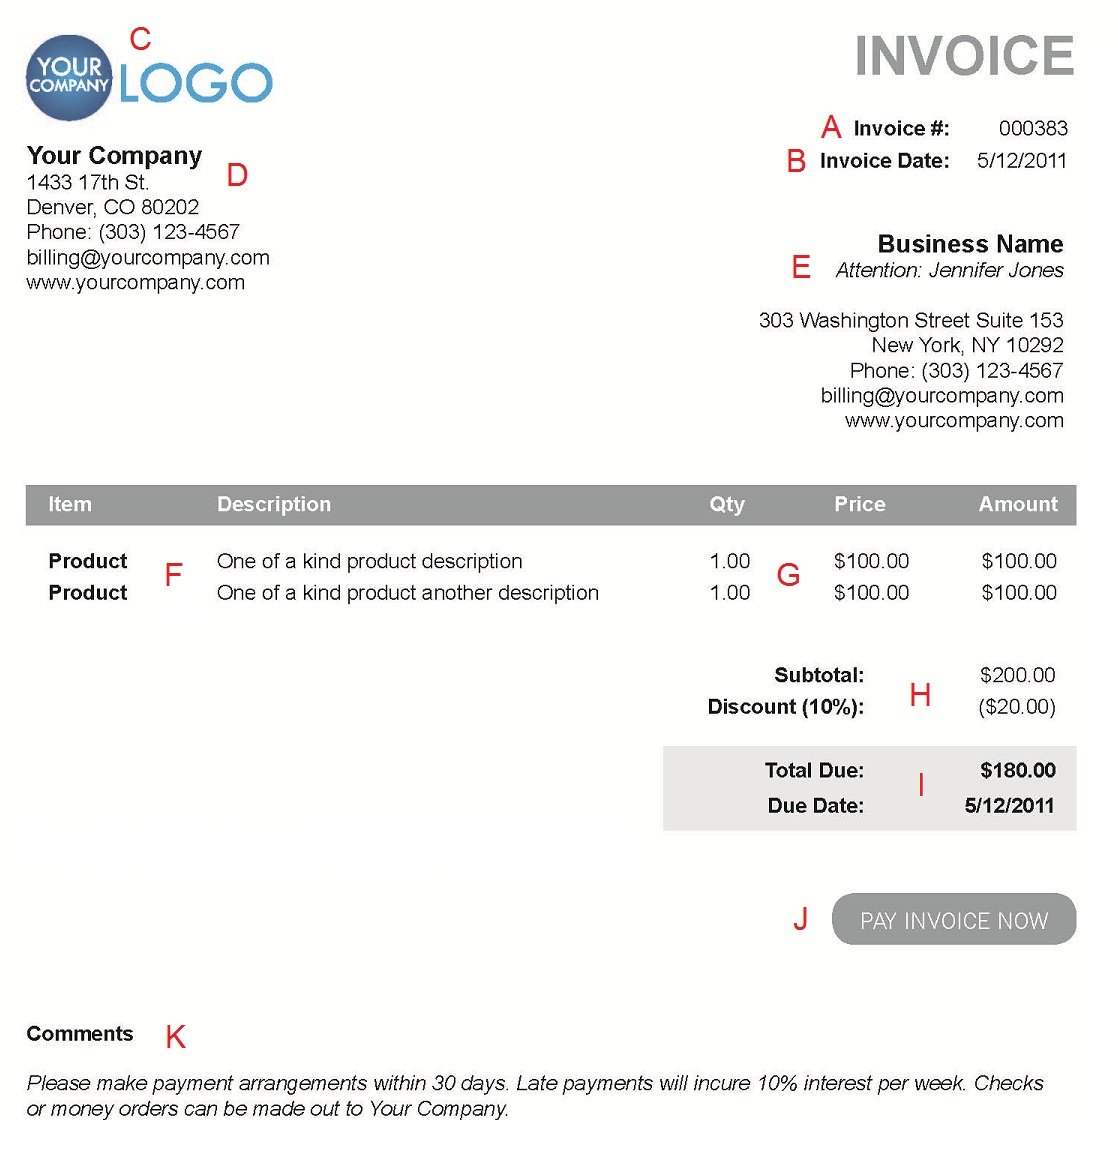 Aaaaeroincus  Inspiring The  Different Sections Of An Electronic Payment Invoice With Licious A  With Agreeable Gun Sale Receipt Also Uscis Receipt Number Meaning In Addition Super Shuttle Receipt And Receipt For Salmon As Well As Keeping Receipts Additionally Receipts Templates From Paysimplecom With Aaaaeroincus  Licious The  Different Sections Of An Electronic Payment Invoice With Agreeable A  And Inspiring Gun Sale Receipt Also Uscis Receipt Number Meaning In Addition Super Shuttle Receipt From Paysimplecom